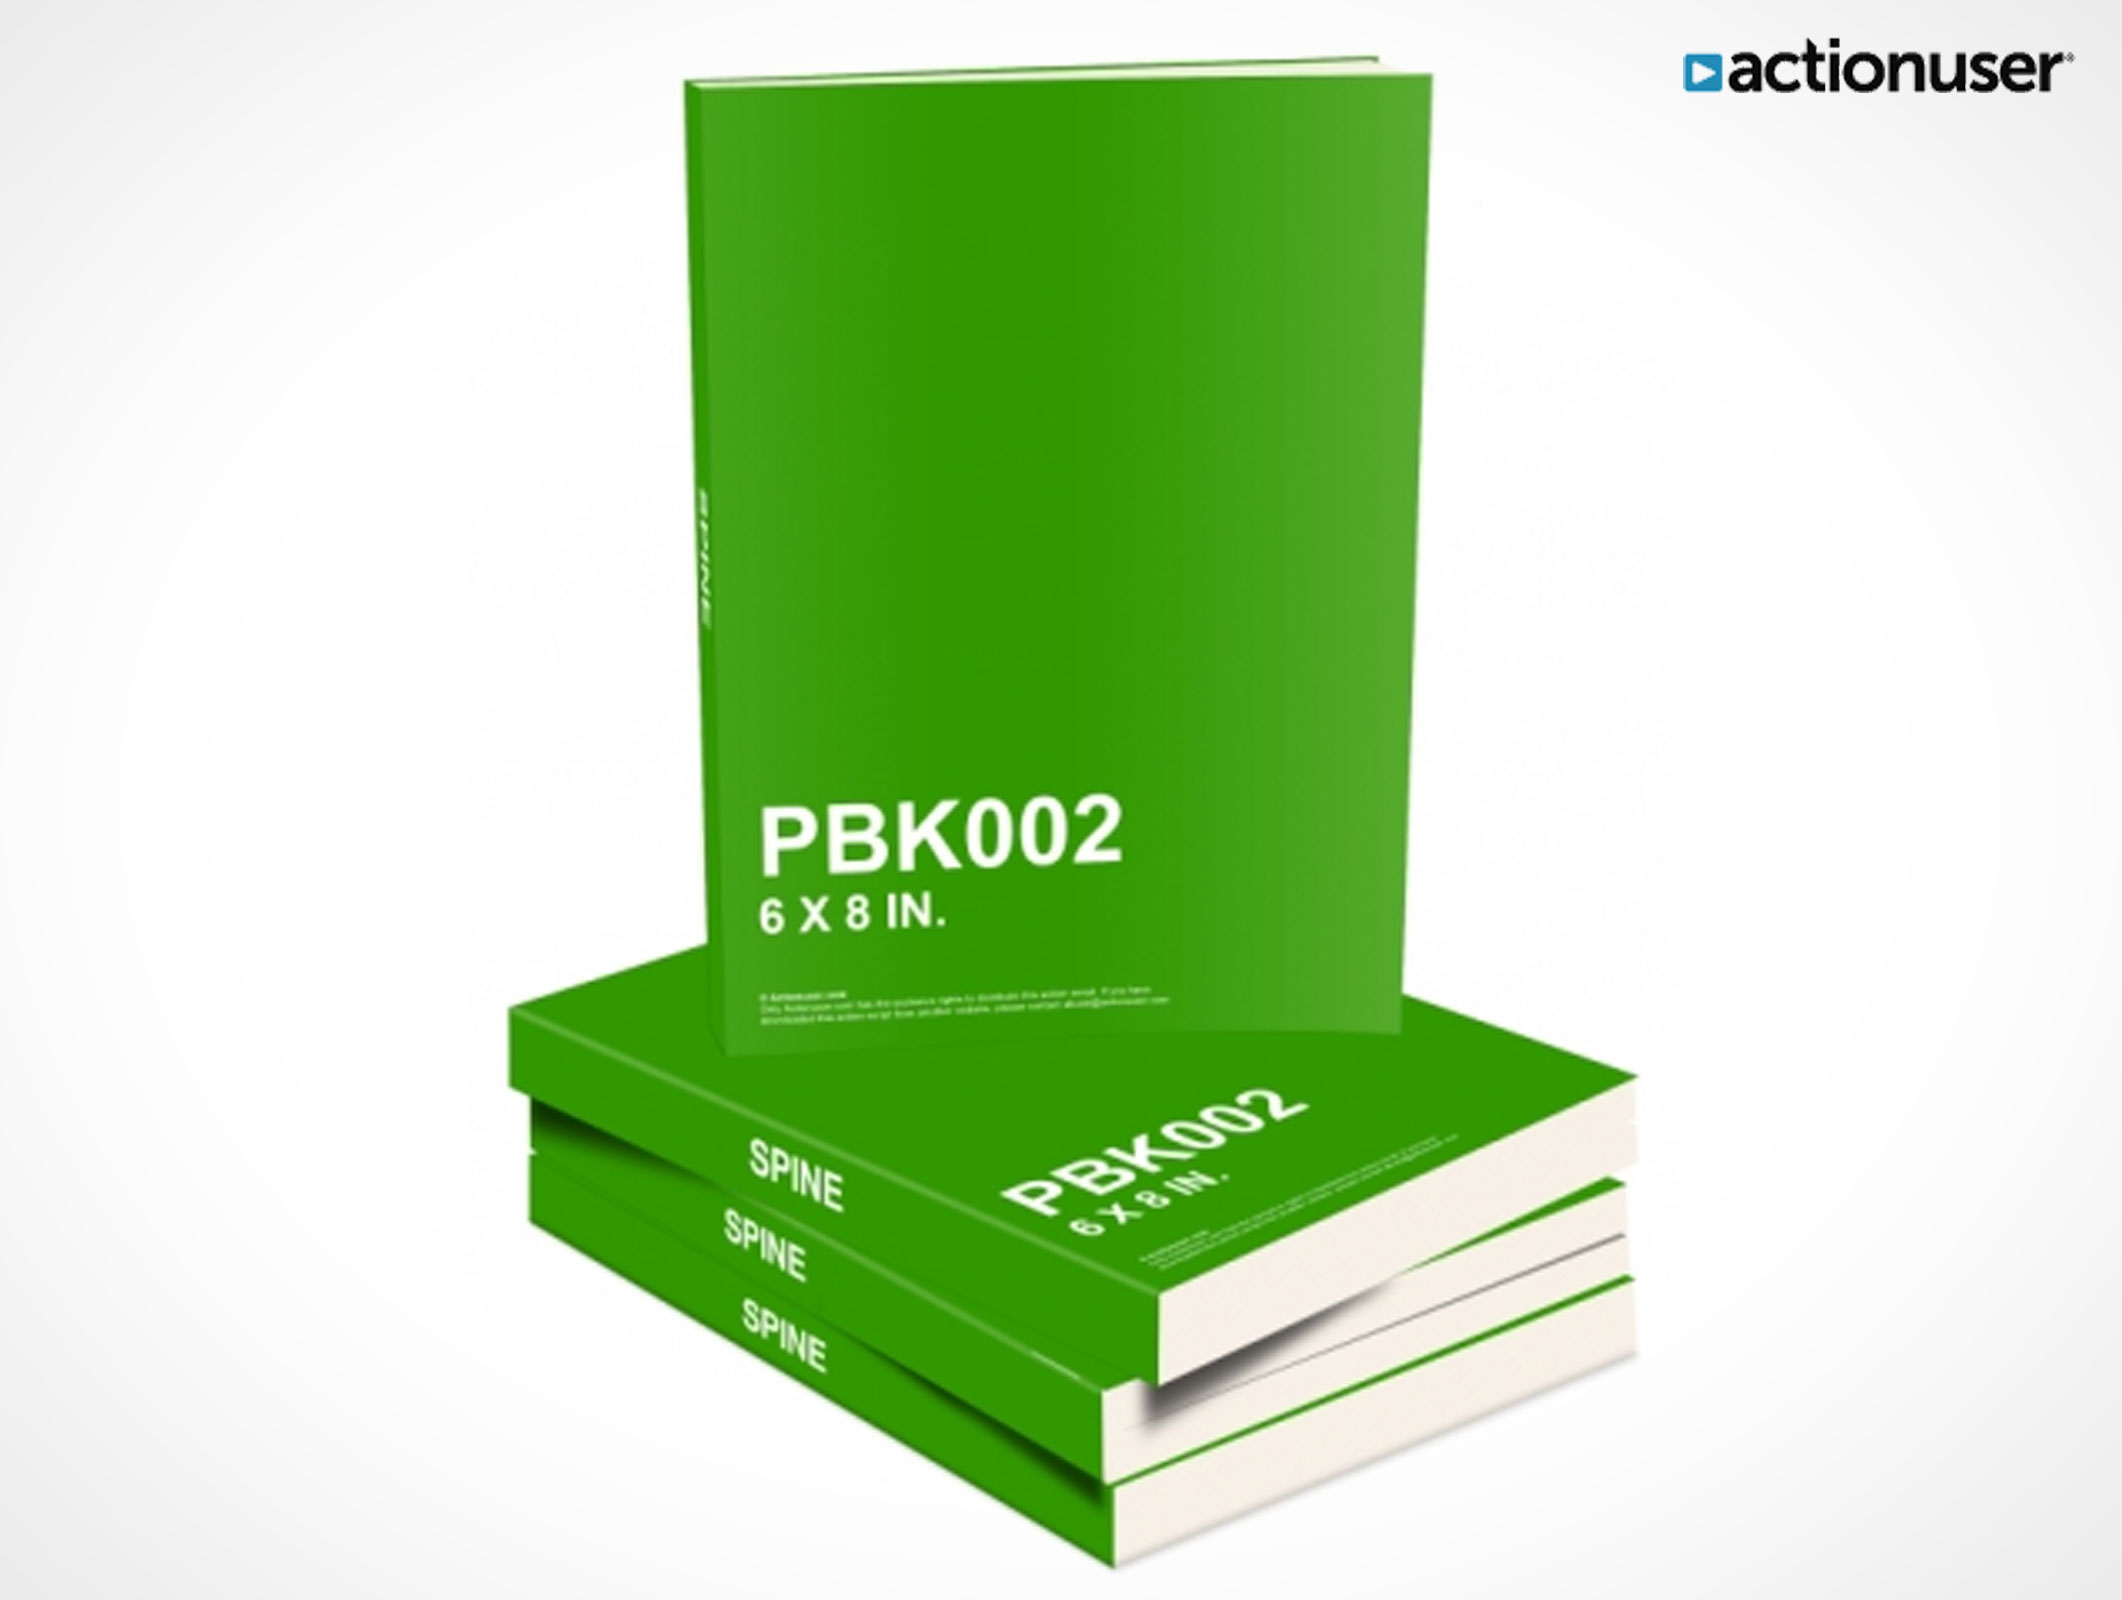 Book Cover Template Psd Free ~ Psd mockup templates pixeden psdgraphics actionuser